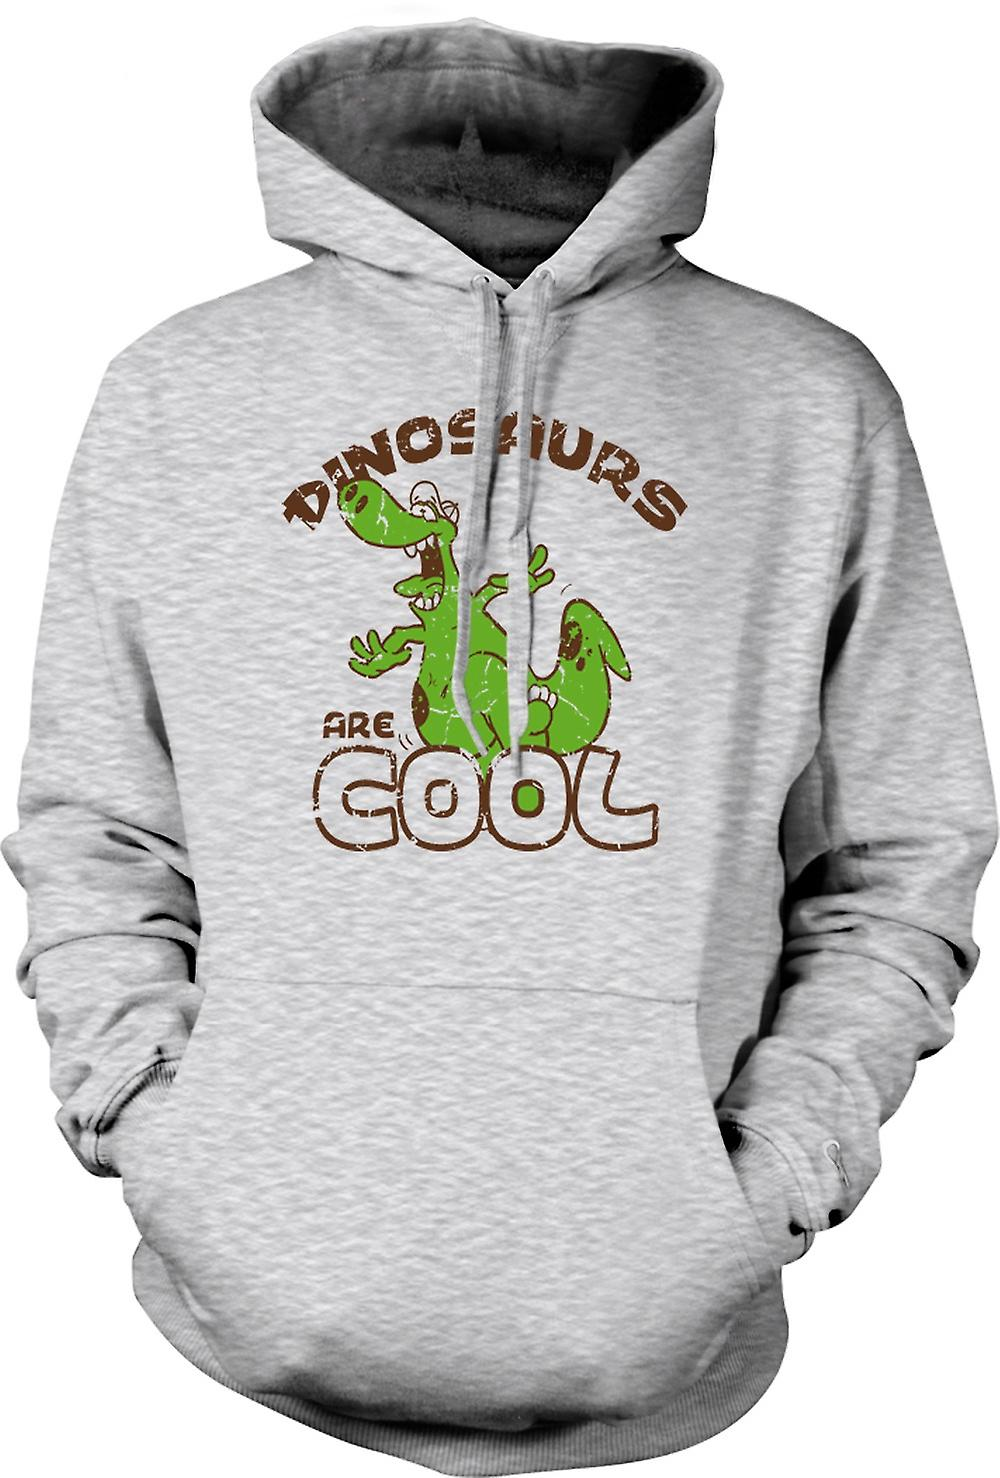 Mens Hoodie - Dinosaurs Are Cool - Funny